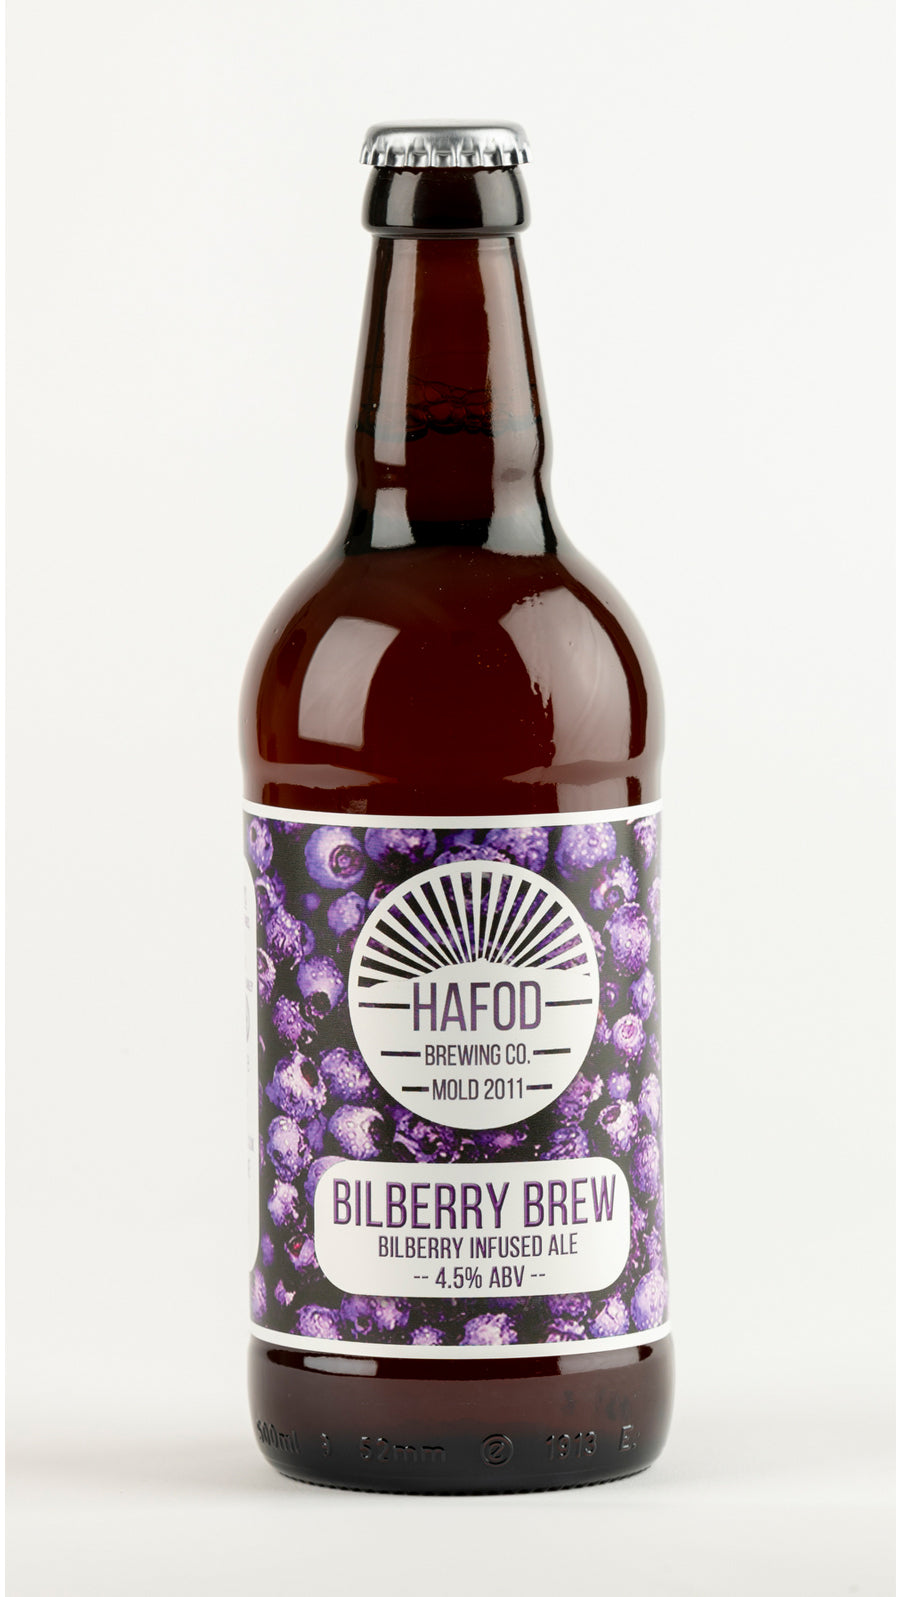 Bilberry Brew - Golden Ale